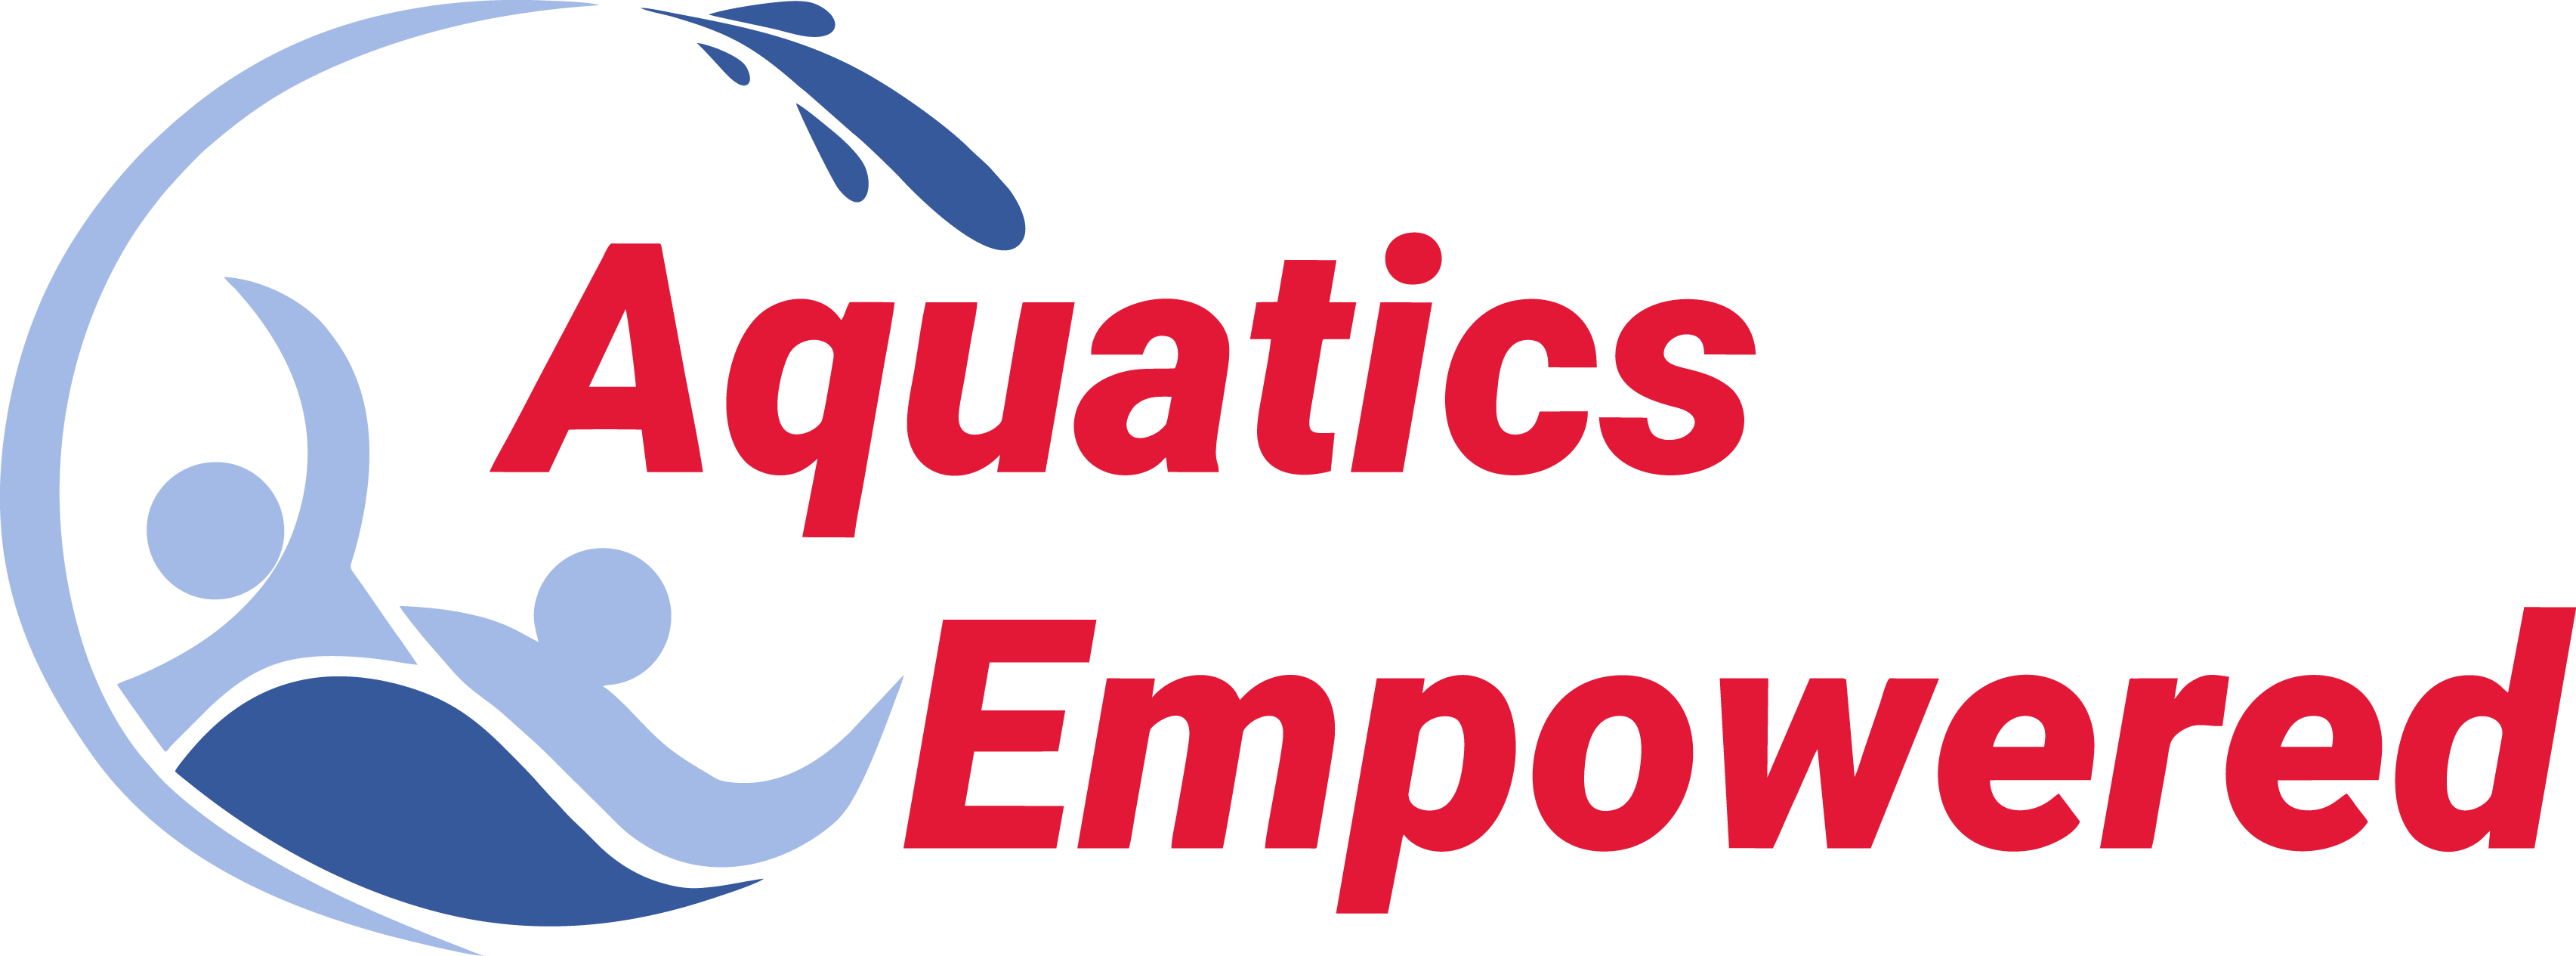 Aquatics Empowered